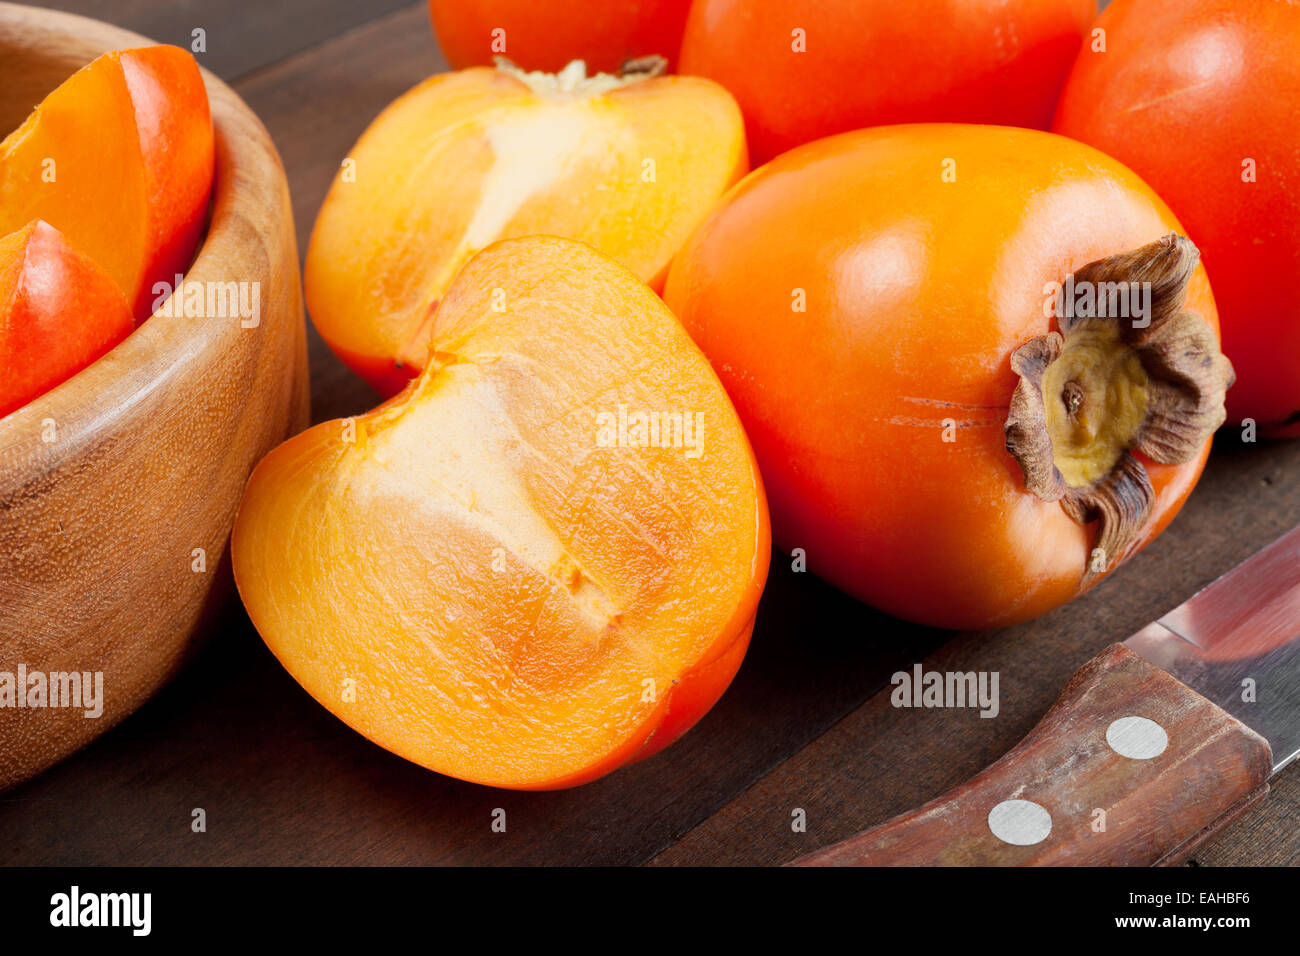 persimmons on wooden table - Stock Image